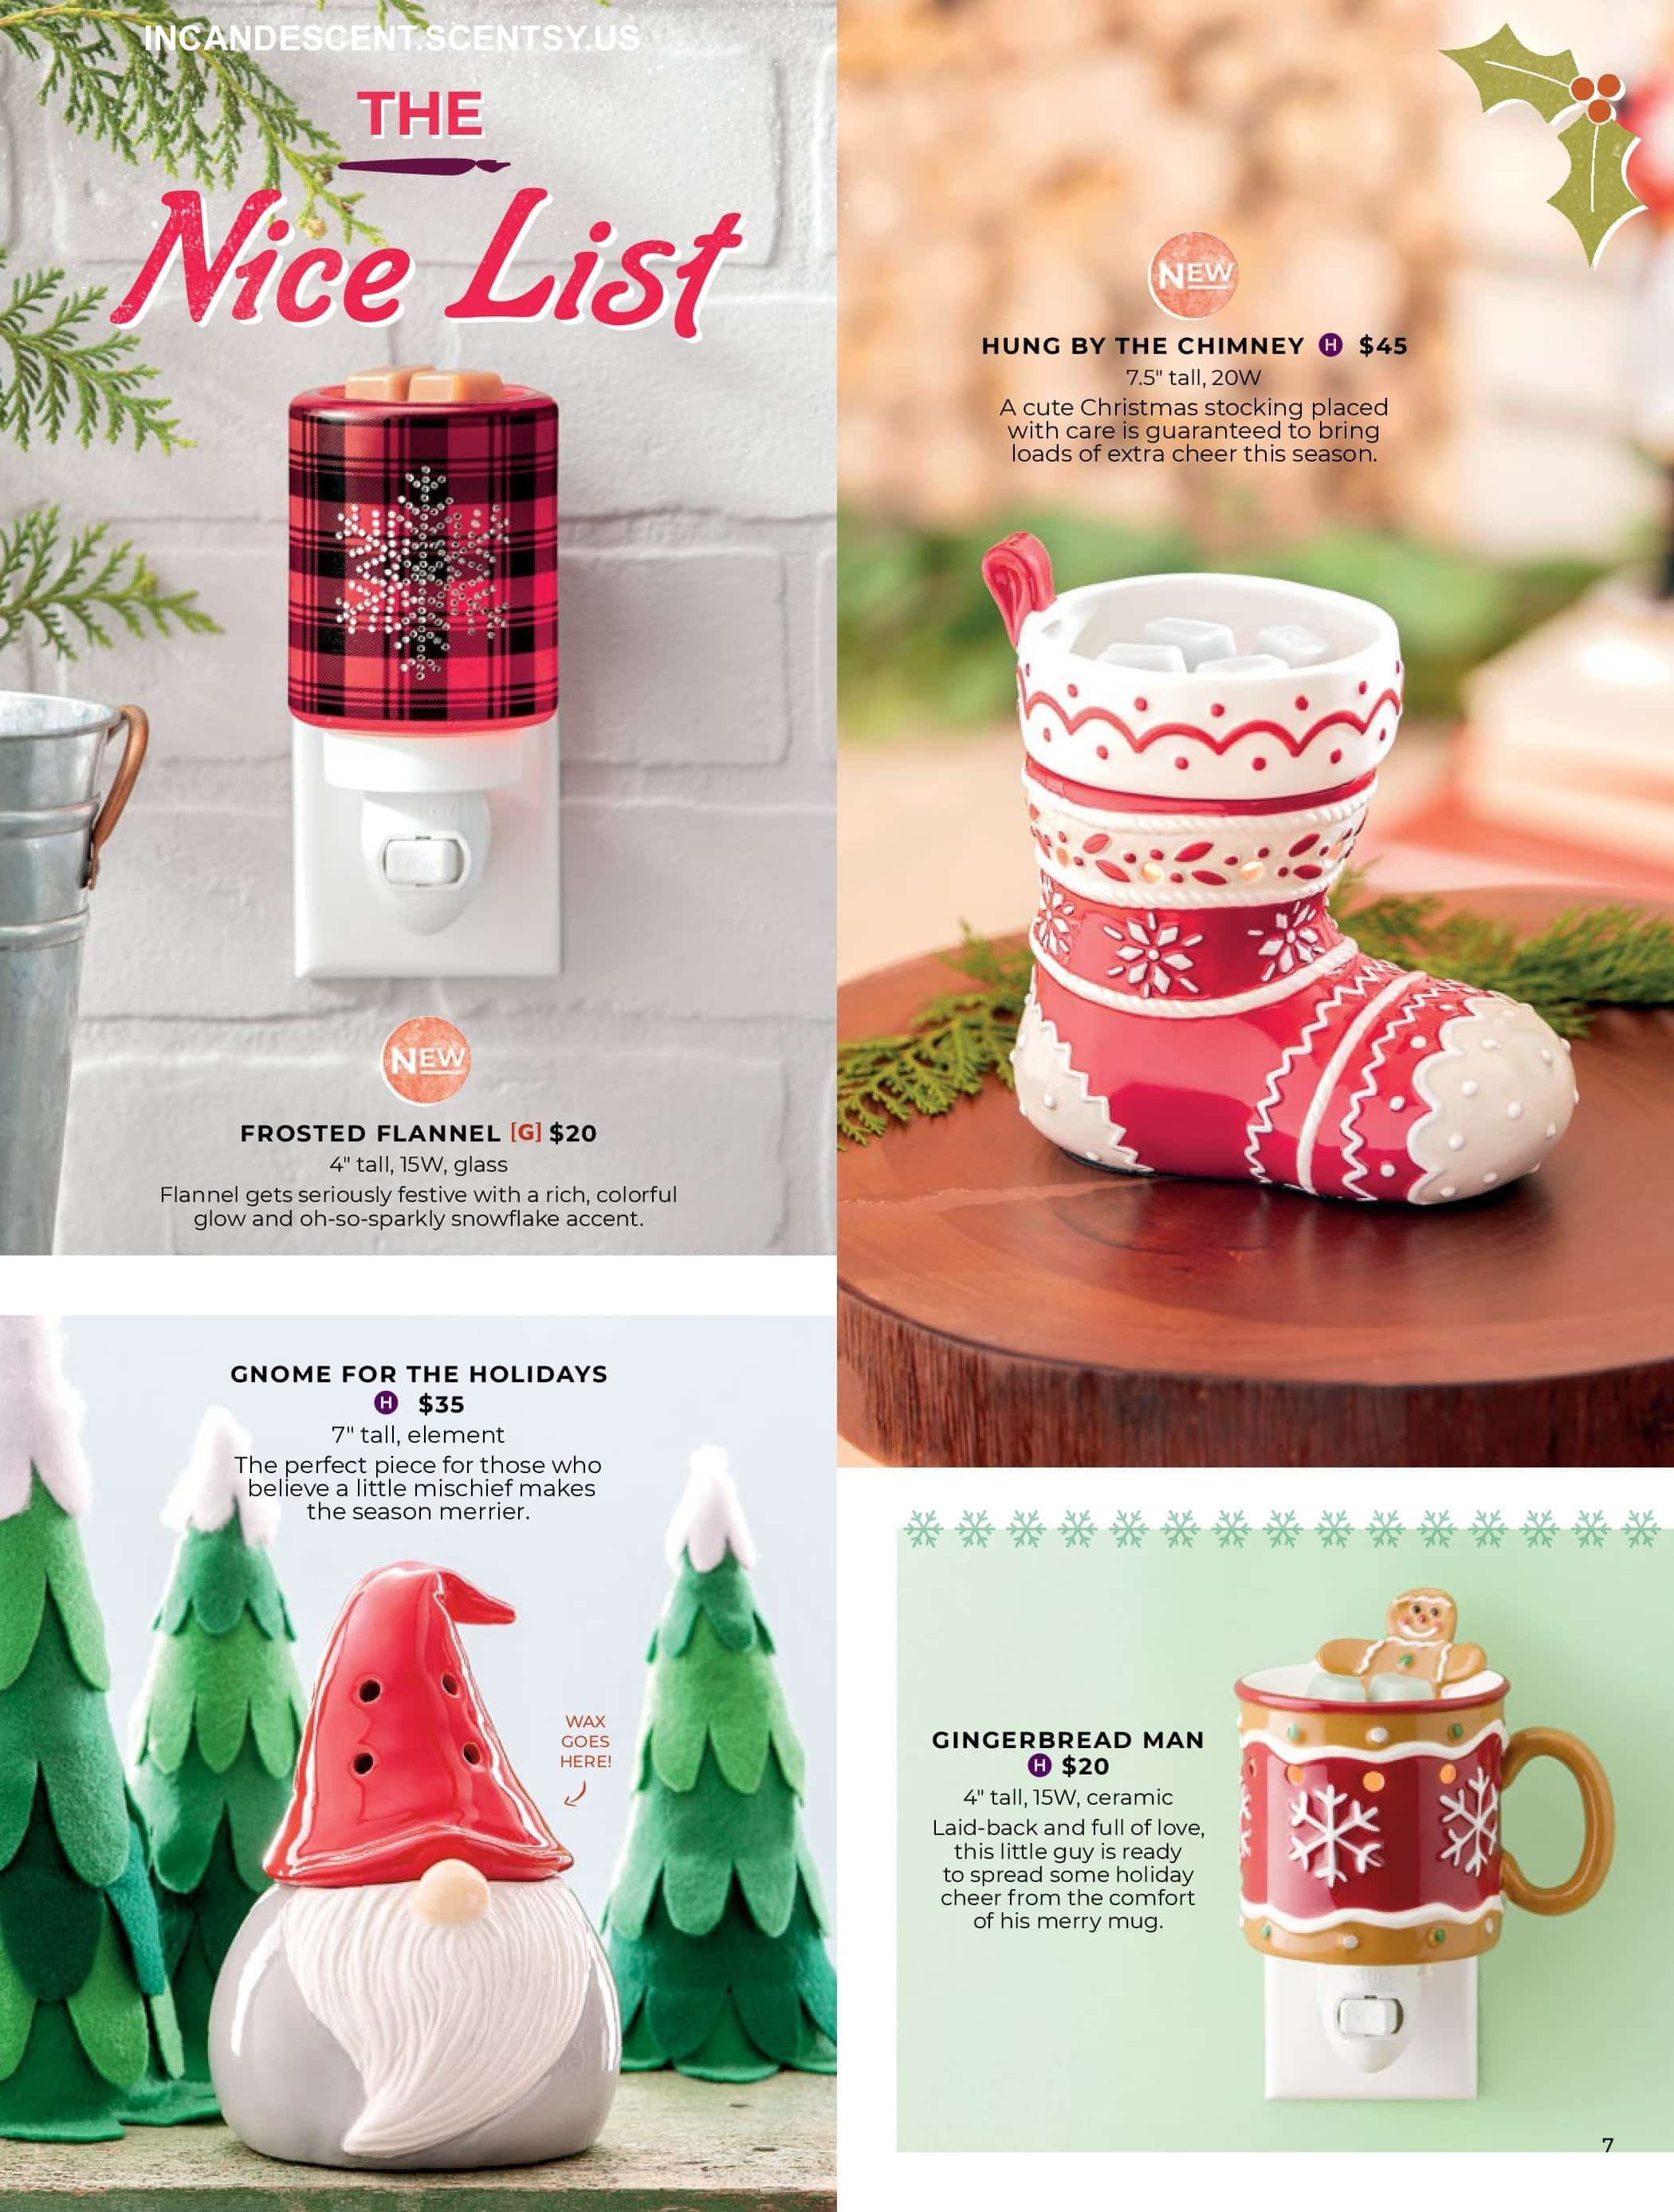 Scentsy Christmas Difuser 2020 CRYSTALLIZE SCENTSY DIFFUSER | HOLIDAY 2020 | Scentsy® Online